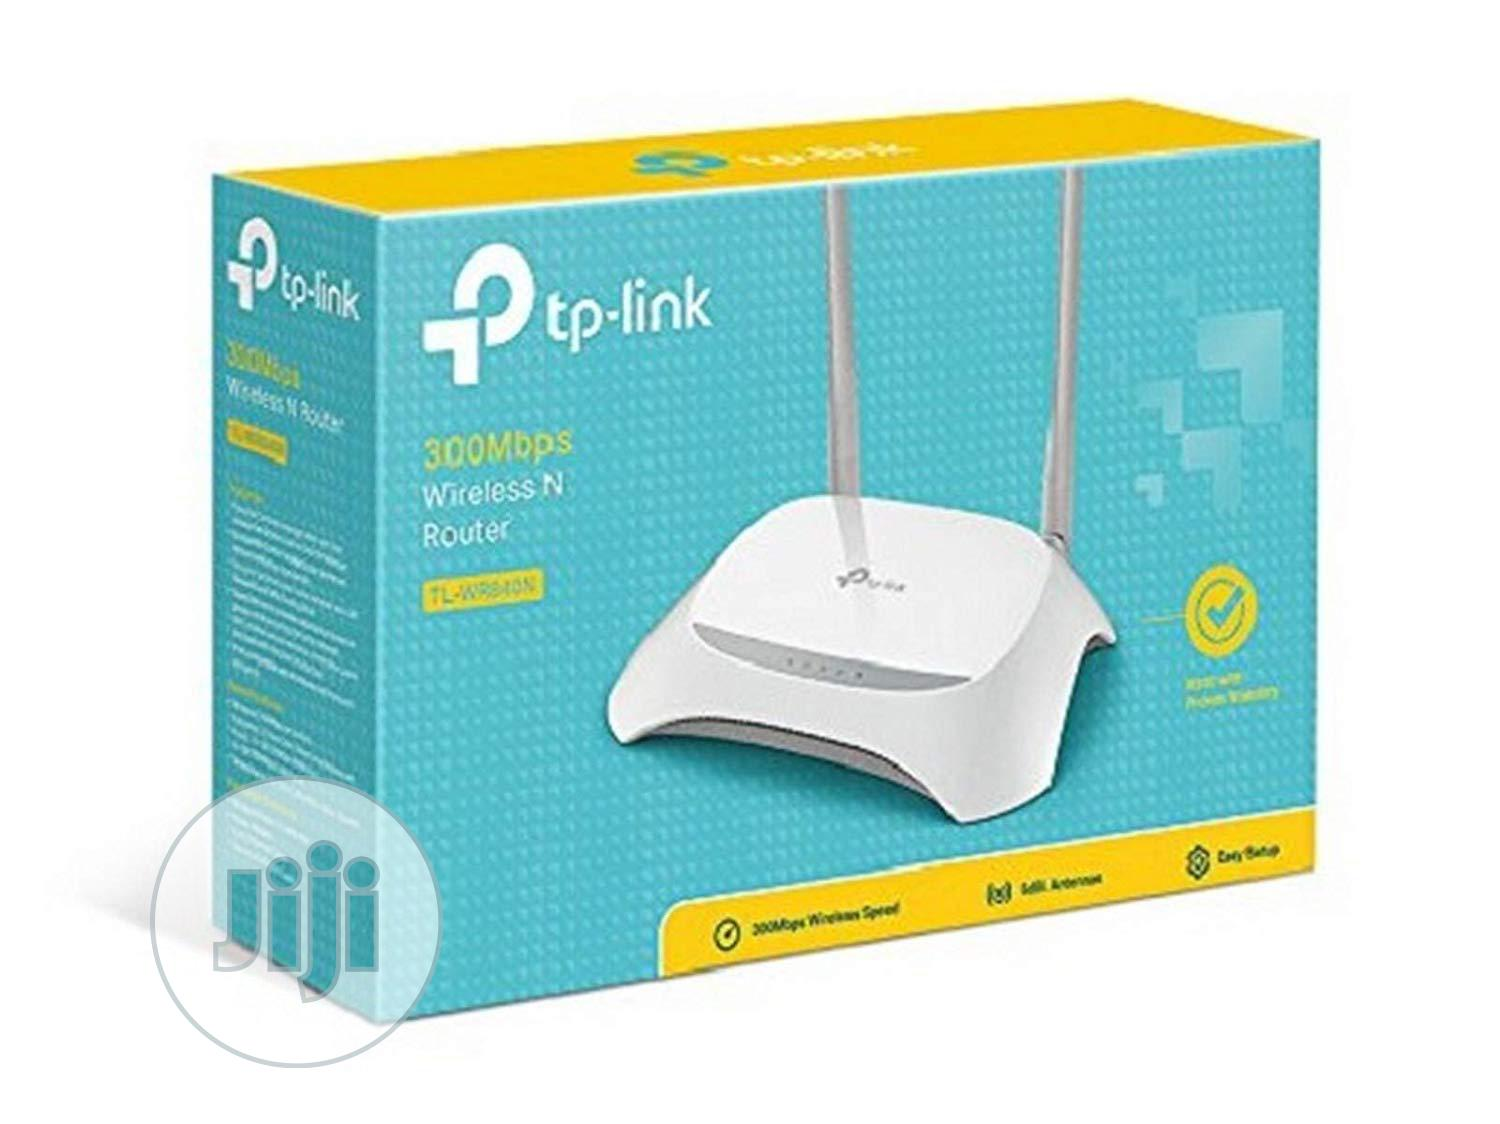 TP-LINK TL-WR840N 300mbps Wireless N Router (Not A Modem) | Networking Products for sale in Ikeja, Lagos State, Nigeria